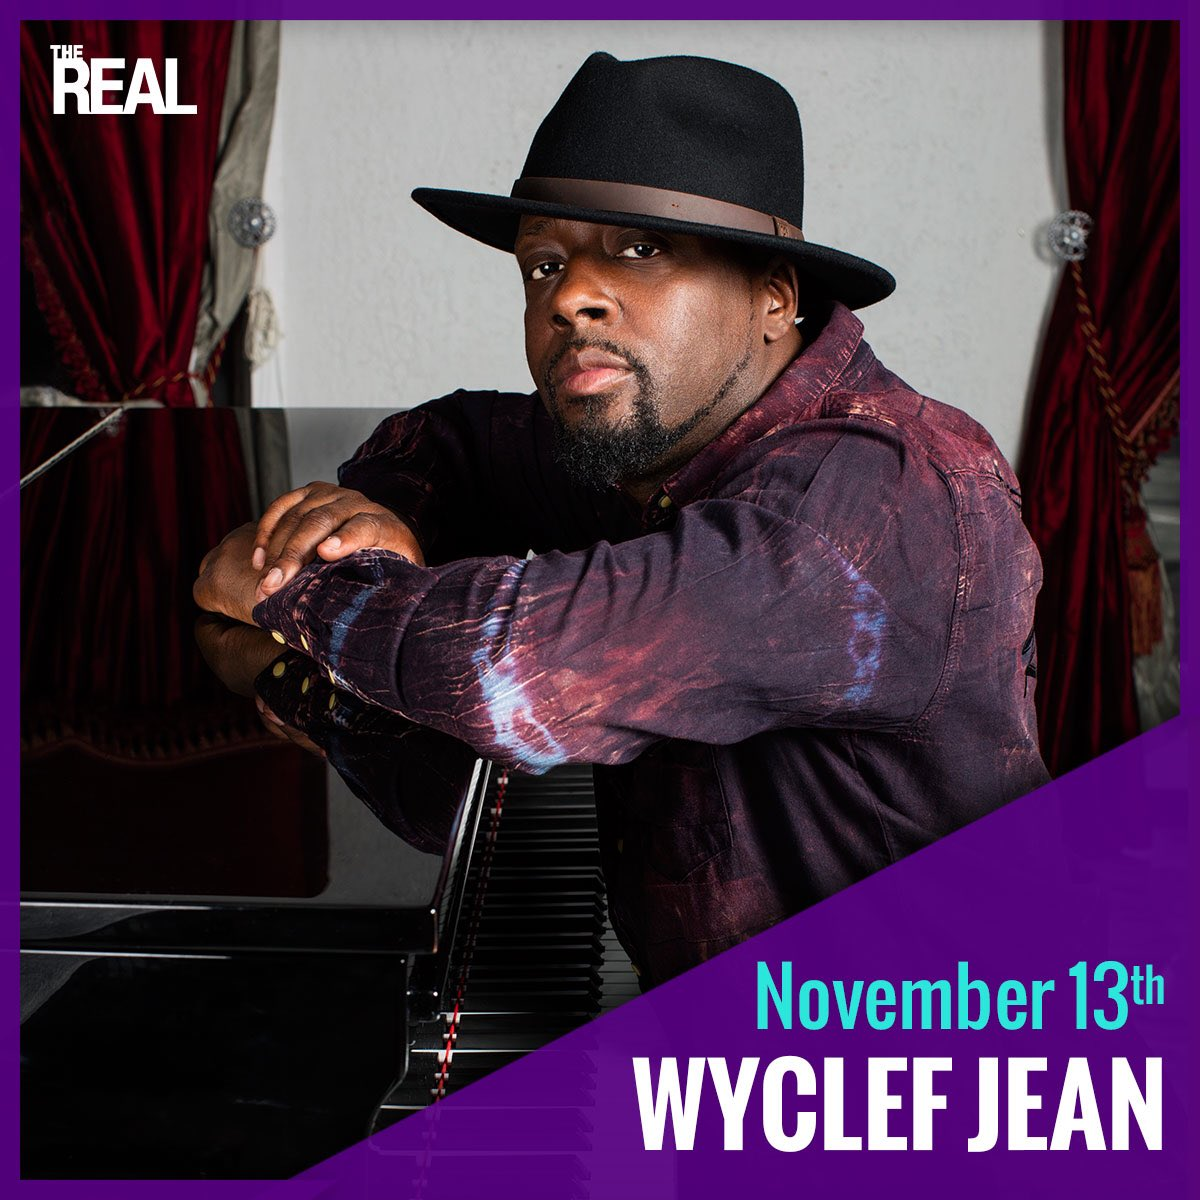 Are your ready for some #RealTalk ? Tune in Monday Nov 13 when I'm the co-host on @therealdaytime ???? https://t.co/k3ah6cOfTr